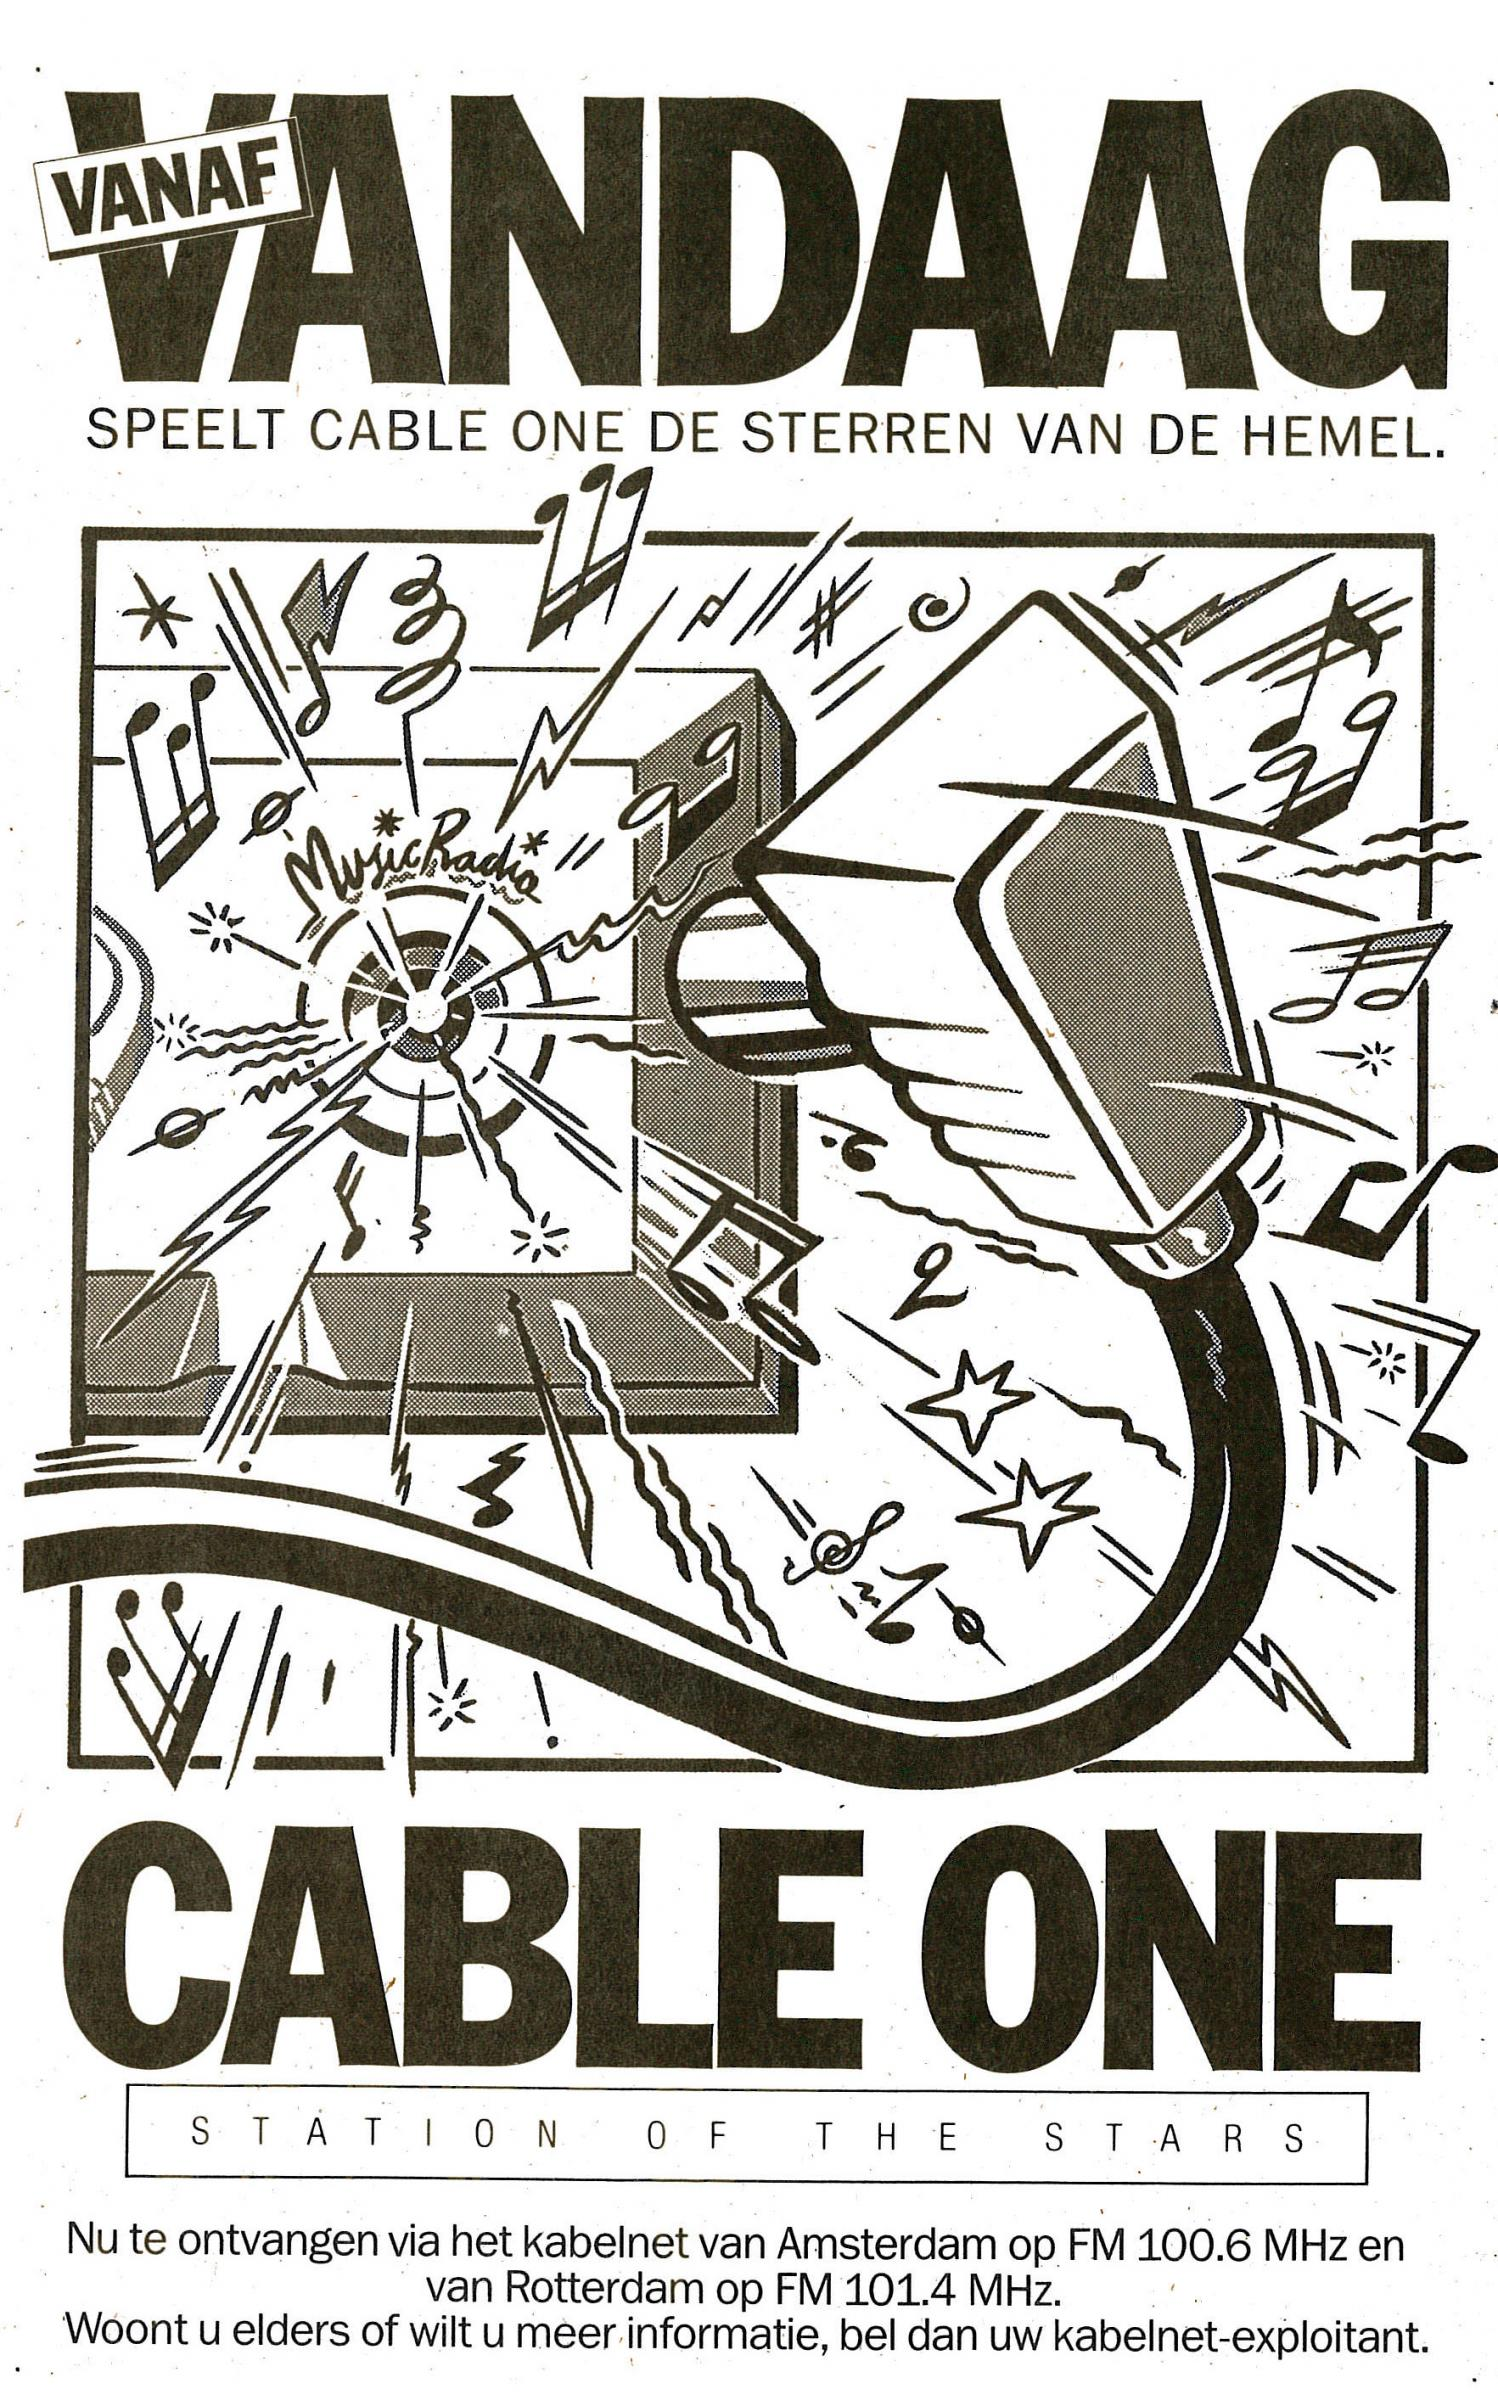 19880203 VK Cable One start.jpg